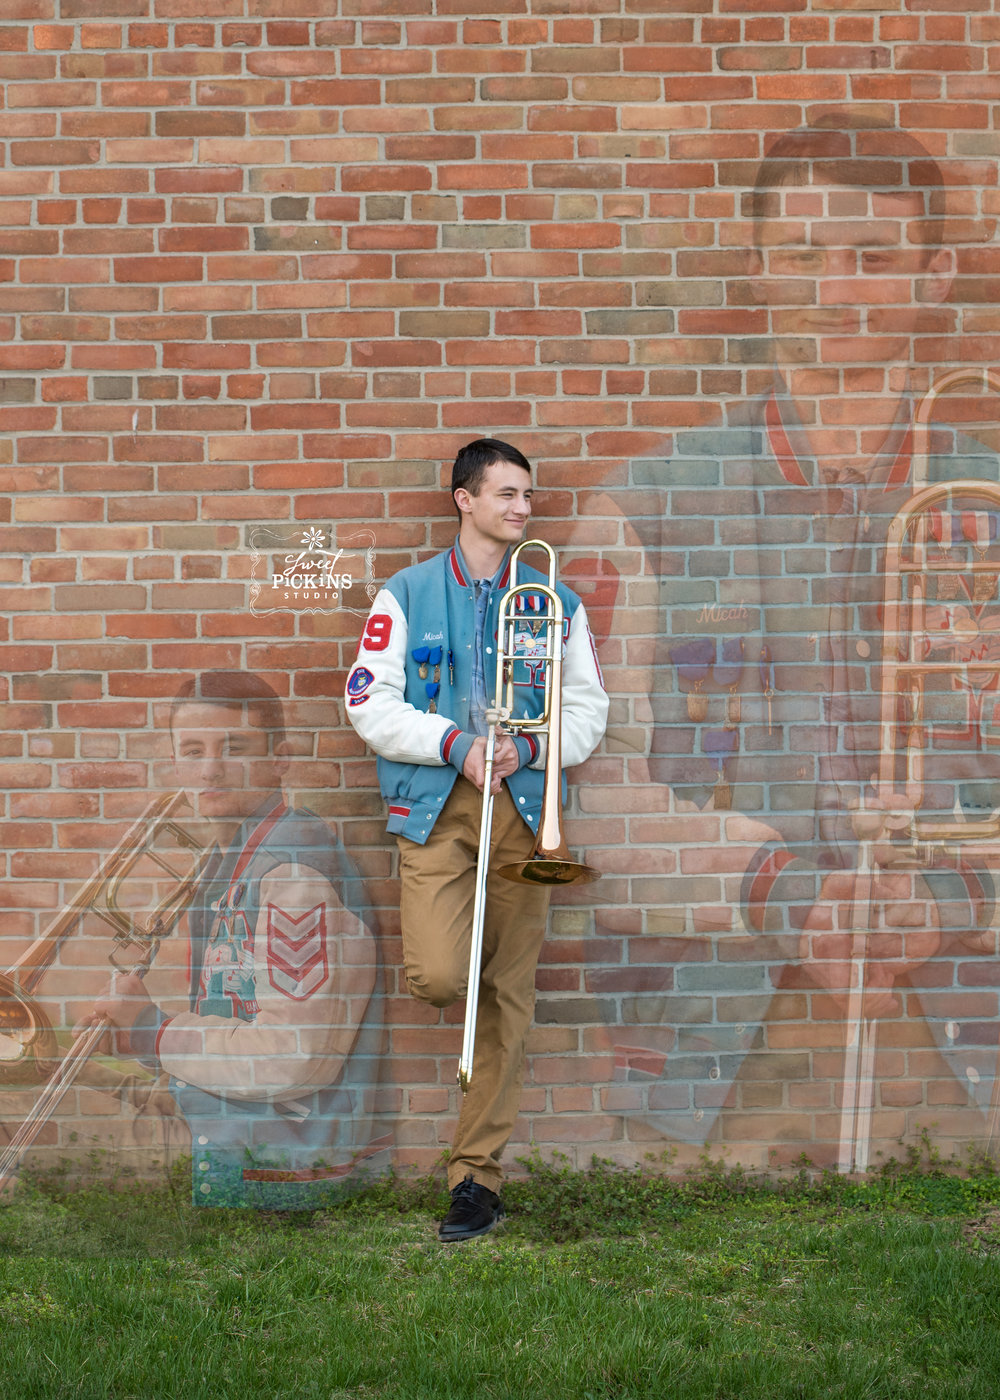 Creative Photo Collage with Superimposed Images for Maconaquah Senior Session by Sweet Pickins Studio | Band Senior with Trombone